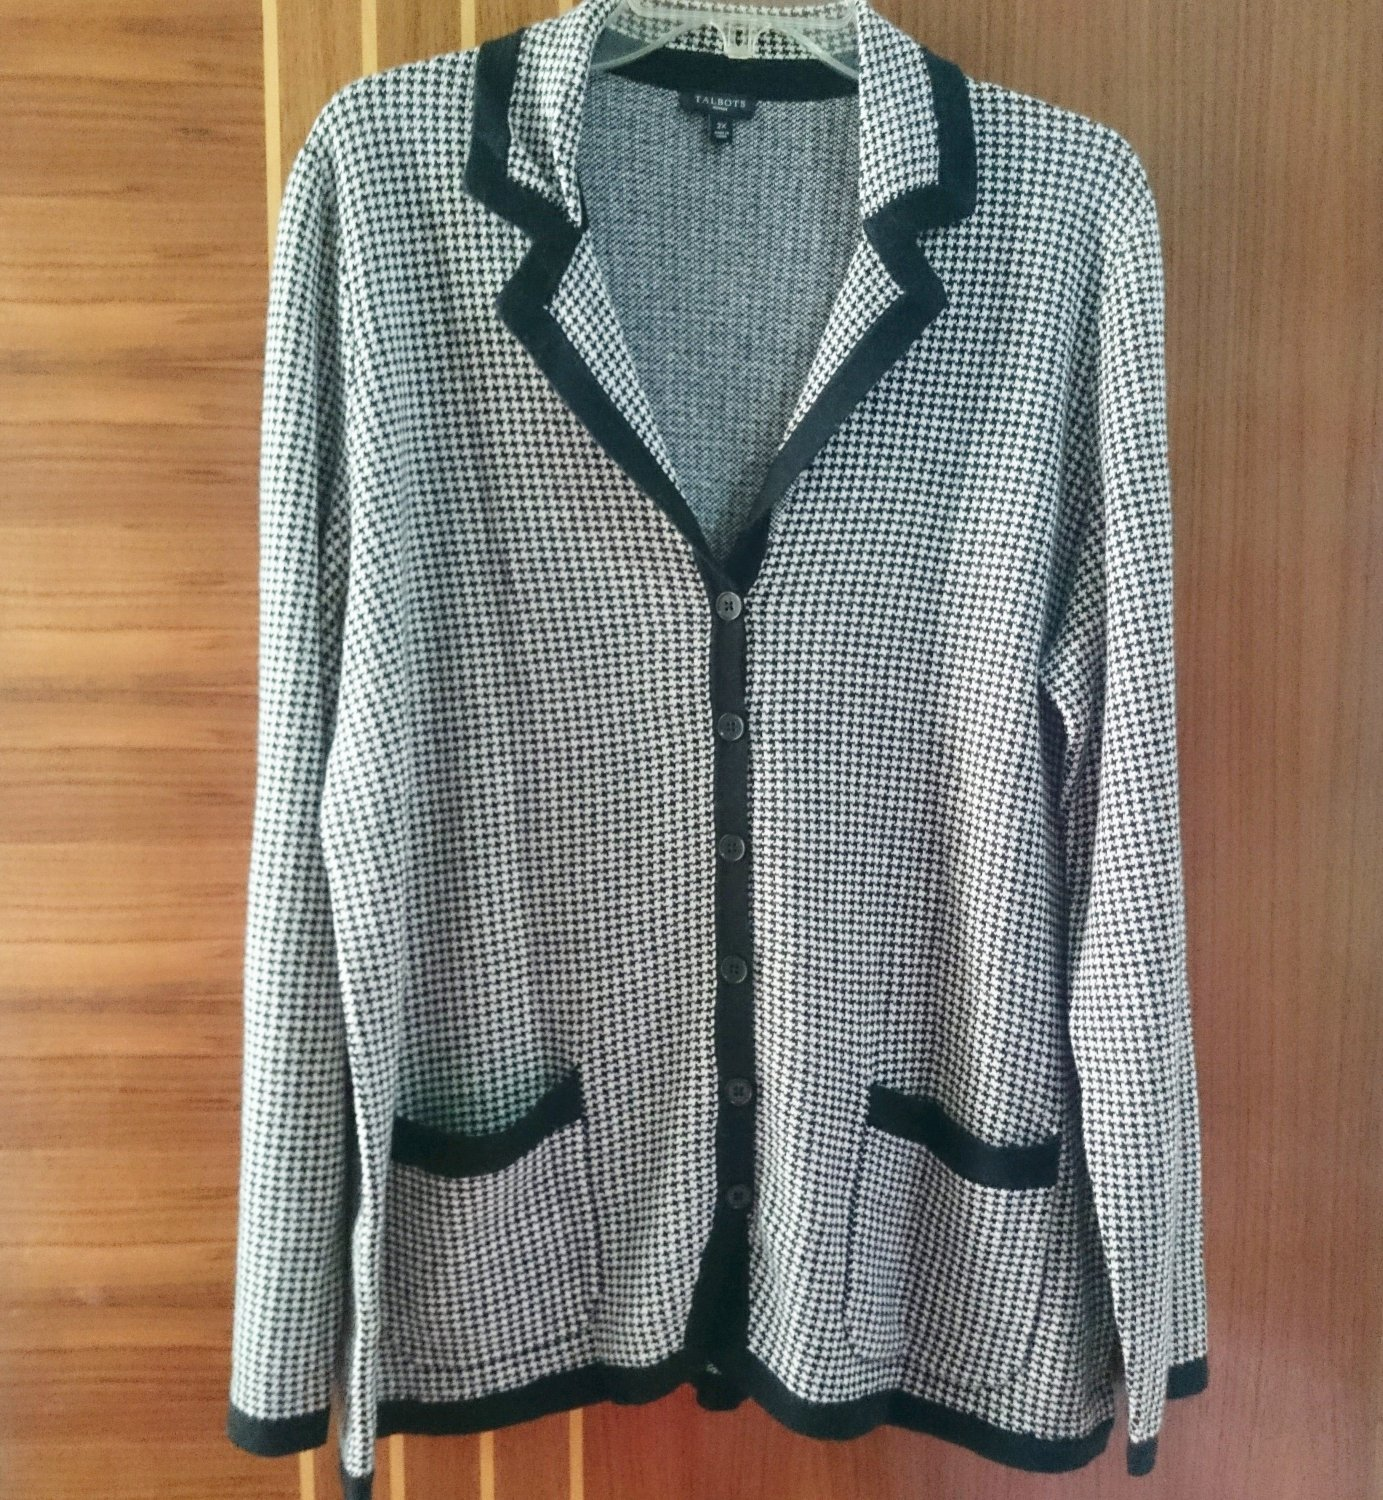 On sale Women's Casual Sweaters Plus Size 2X Talbots Coat 120% Brand new Jacket Black Free Shipping